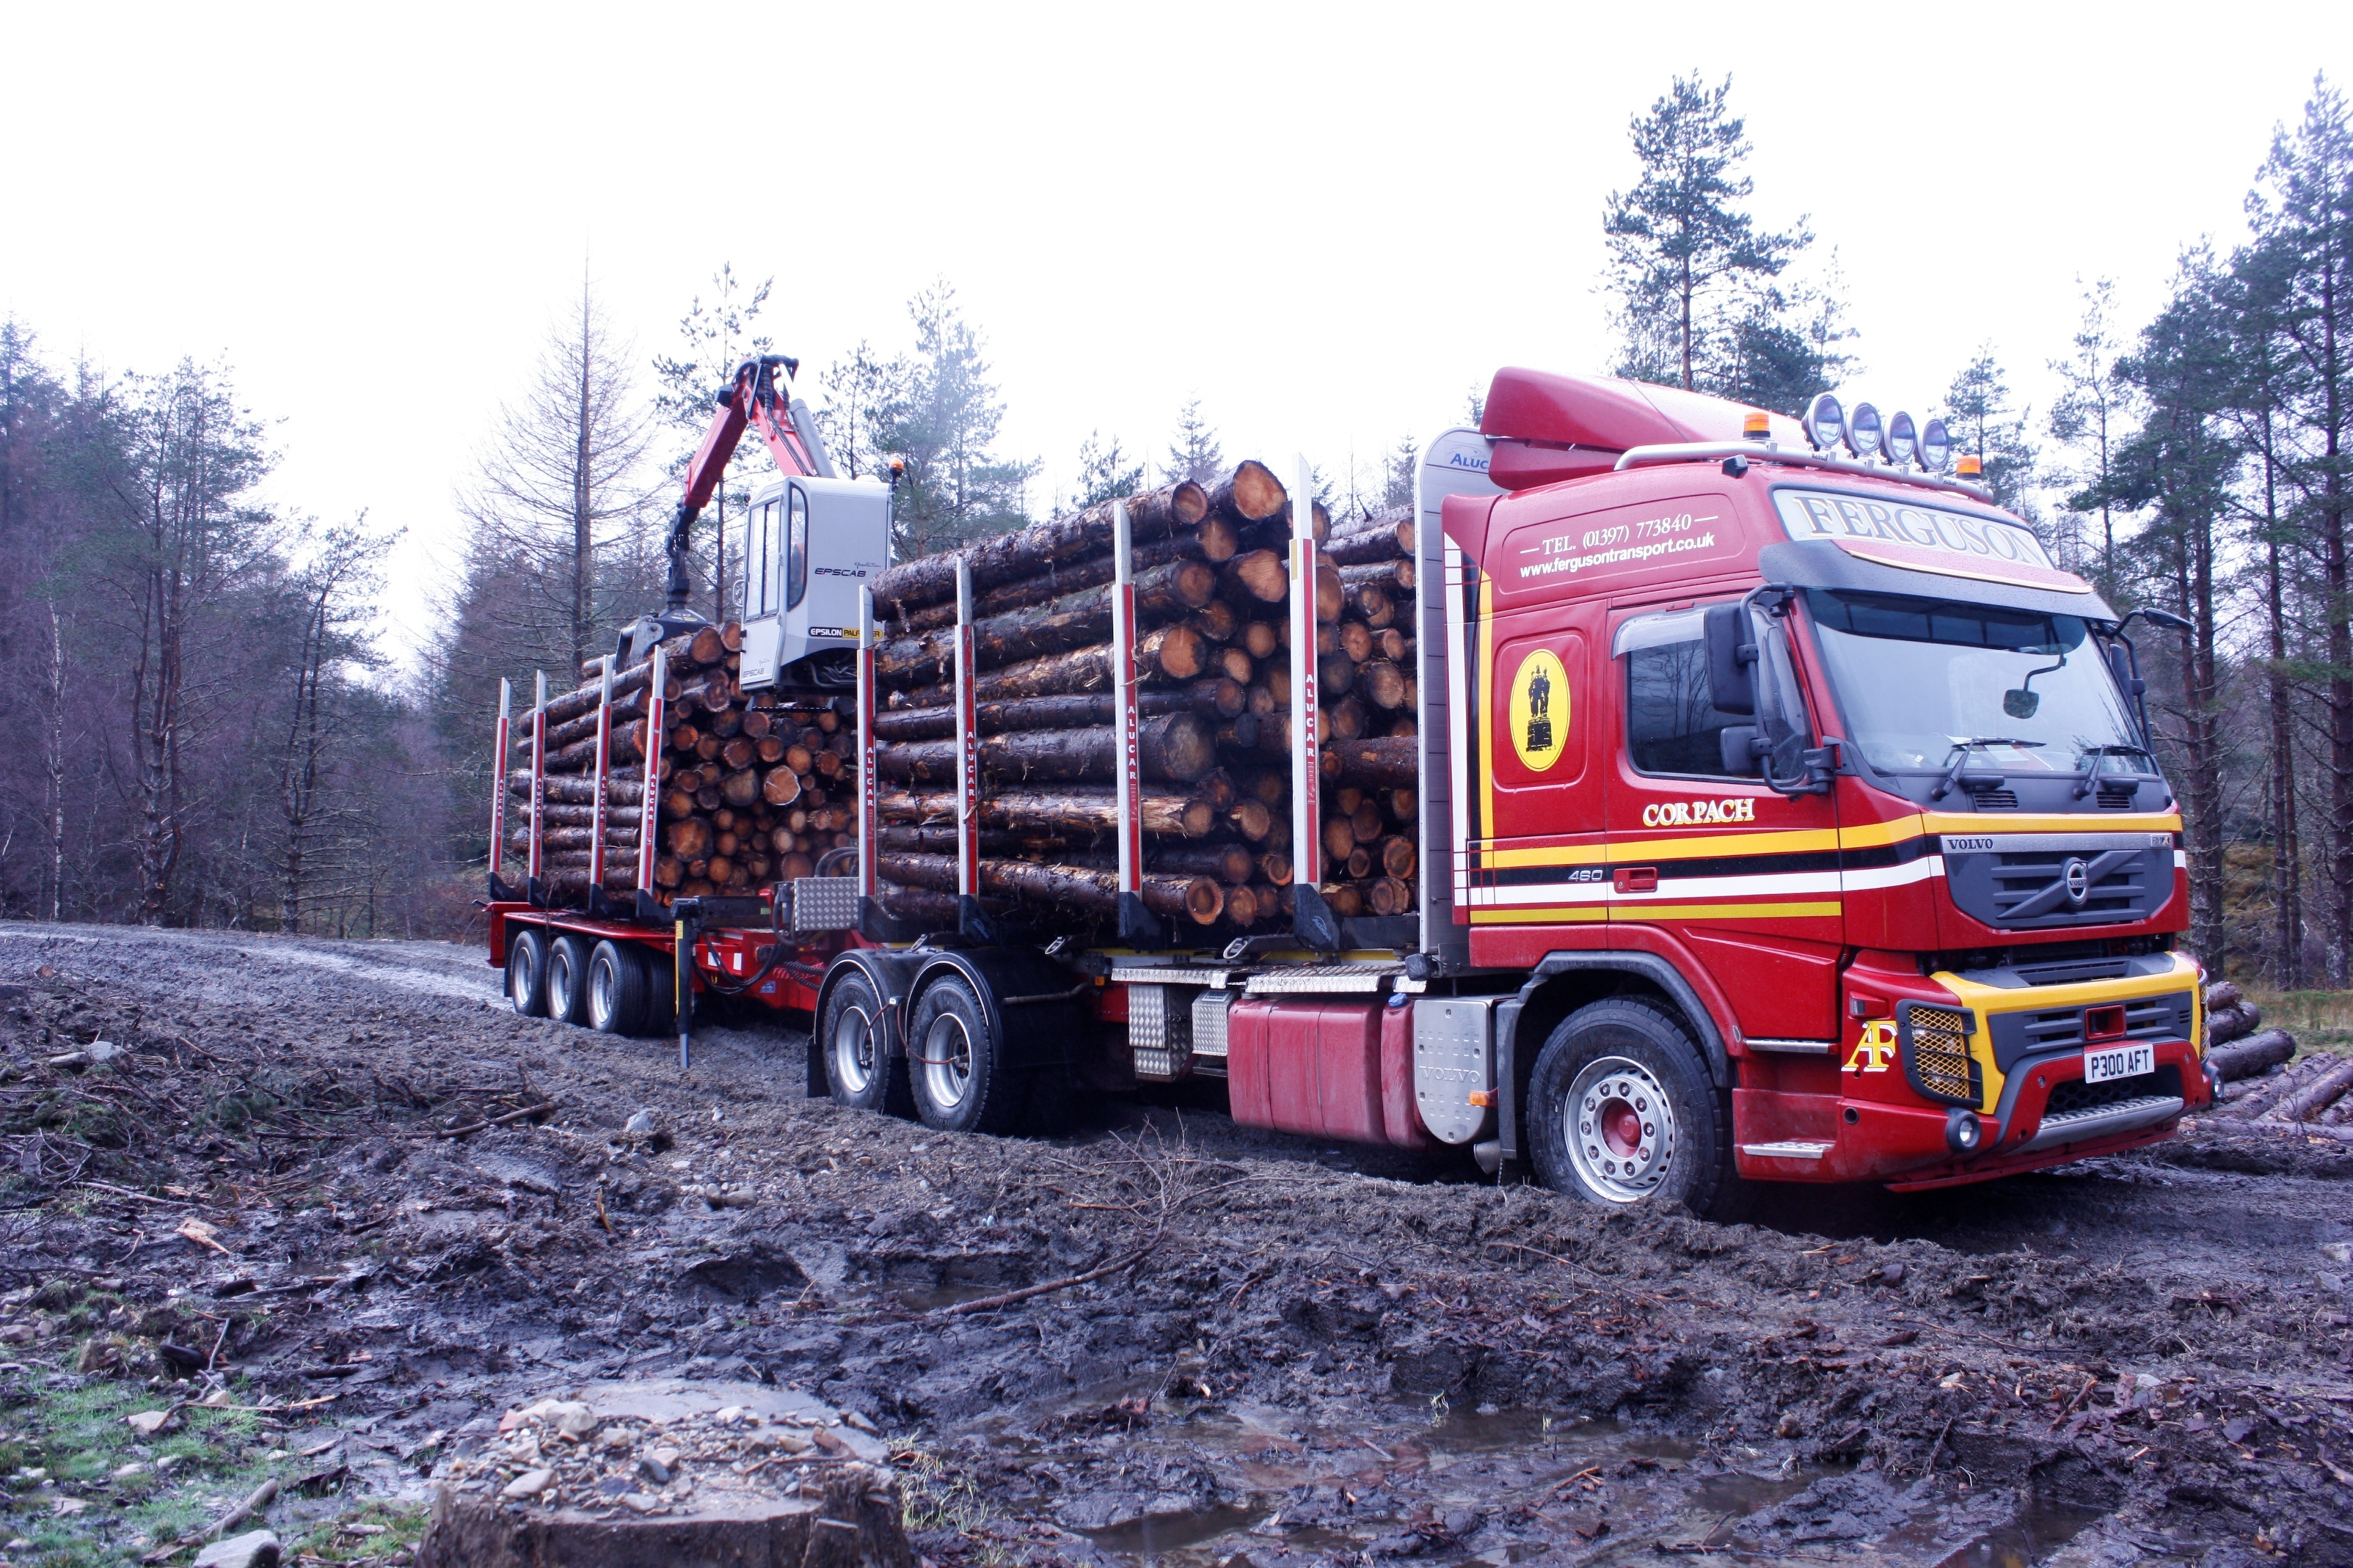 Haulage by road has been the traditional method of harvesting Scotland's forests.